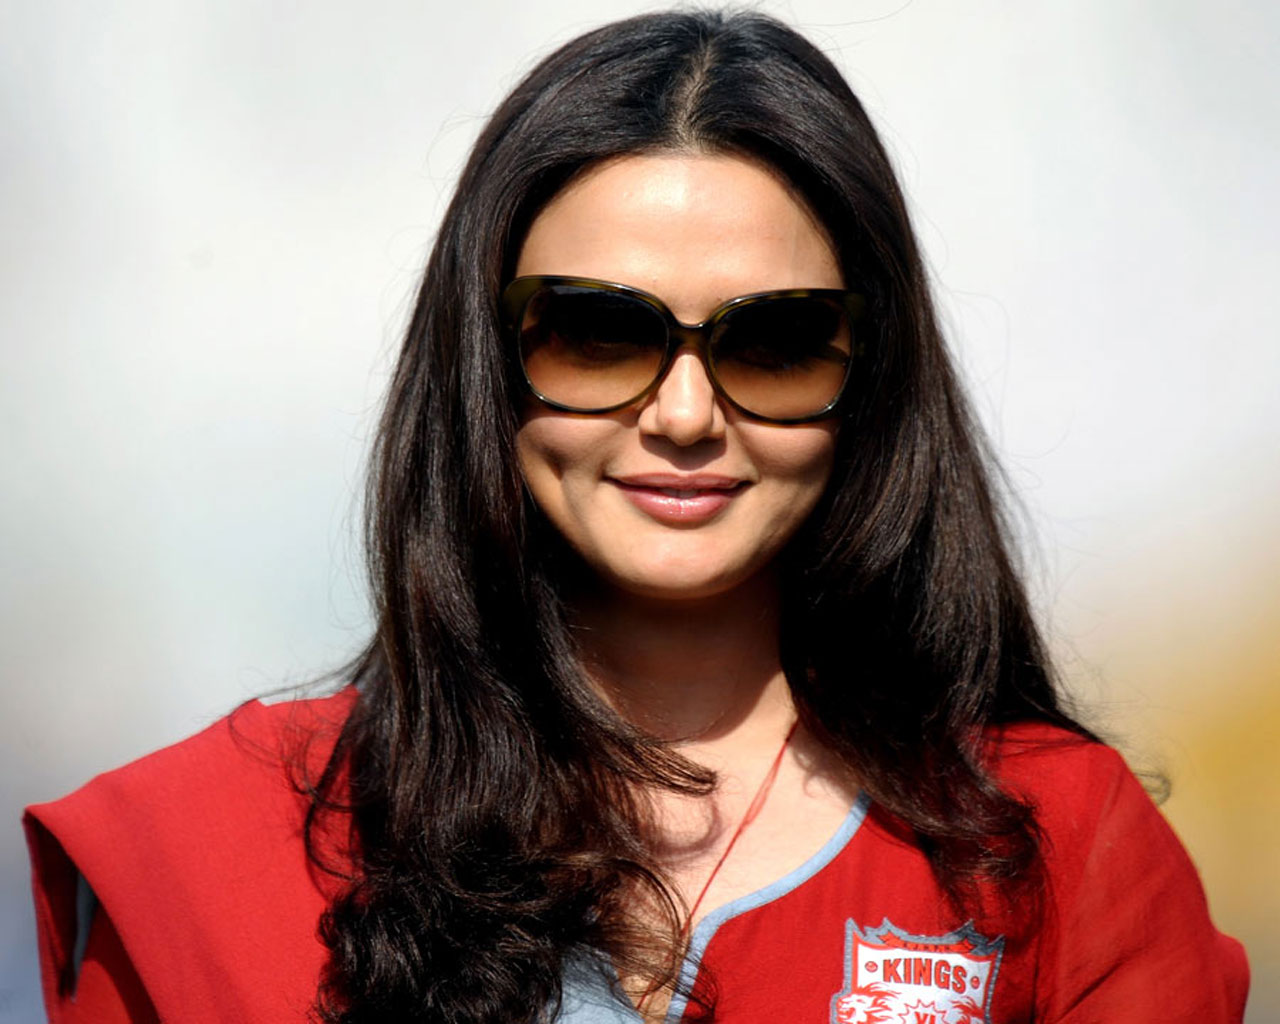 The Dimple Beauty in IPL